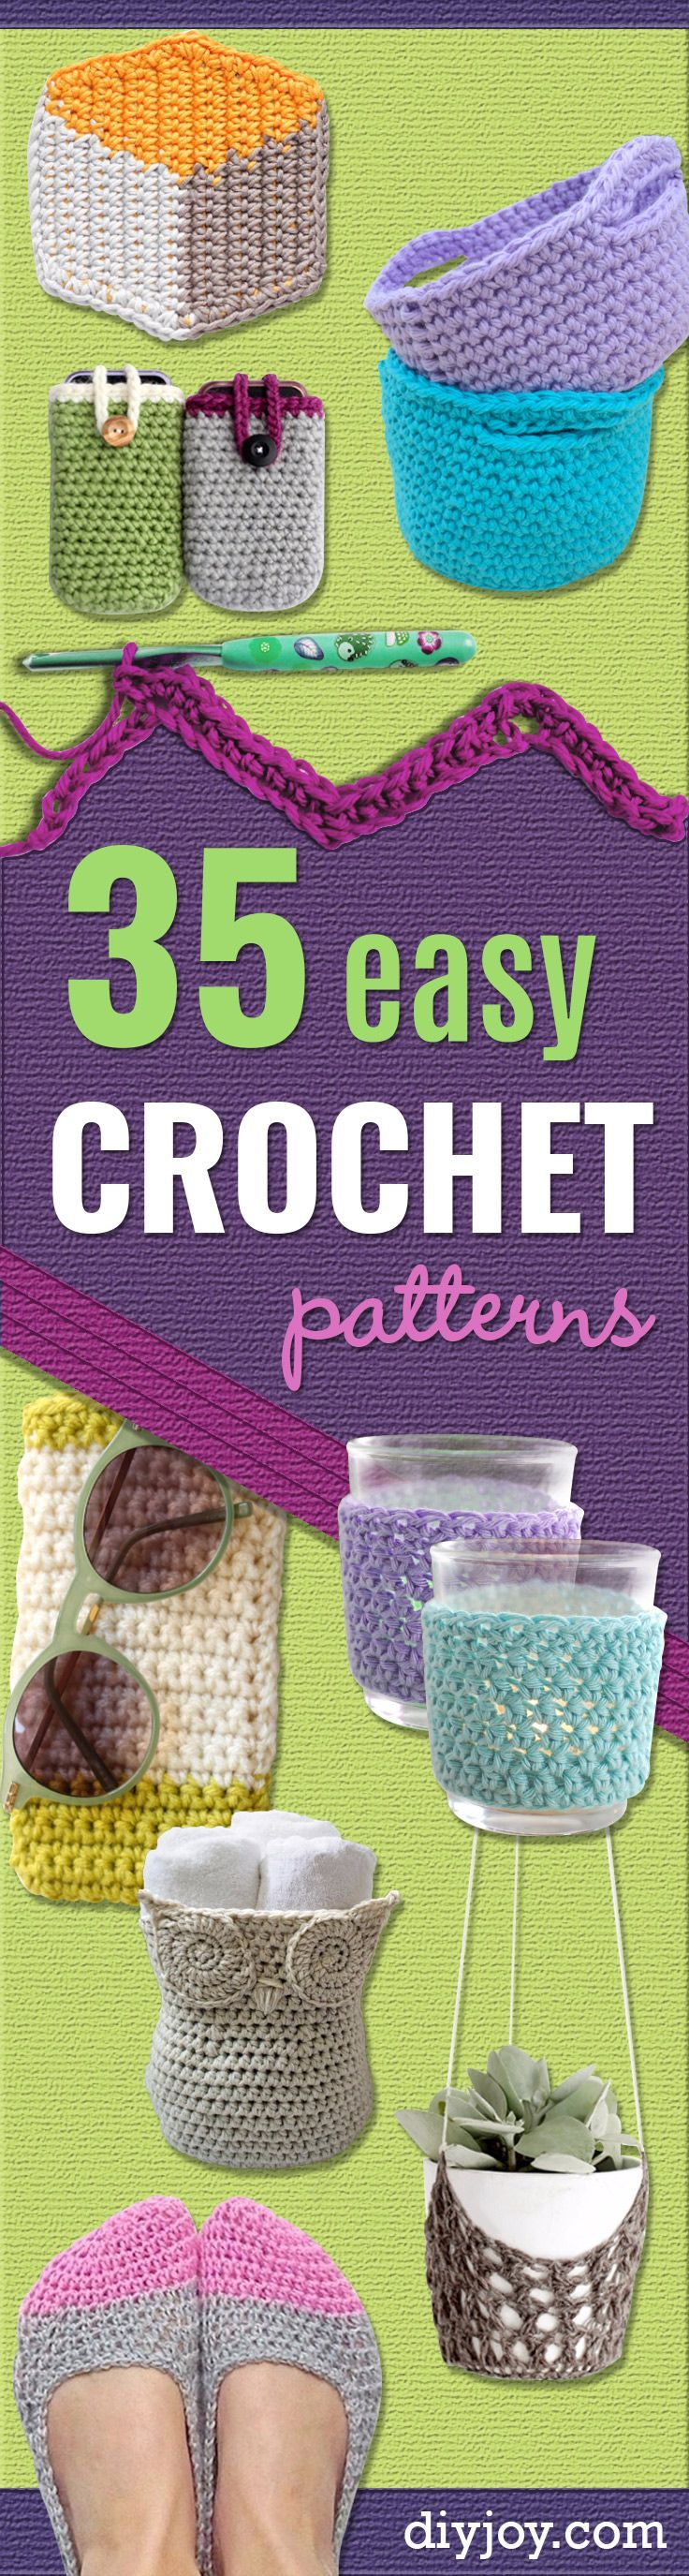 35 easy crochet patterns easy crochet patterns easy crochet and 35 easy crochet patterns bankloansurffo Image collections